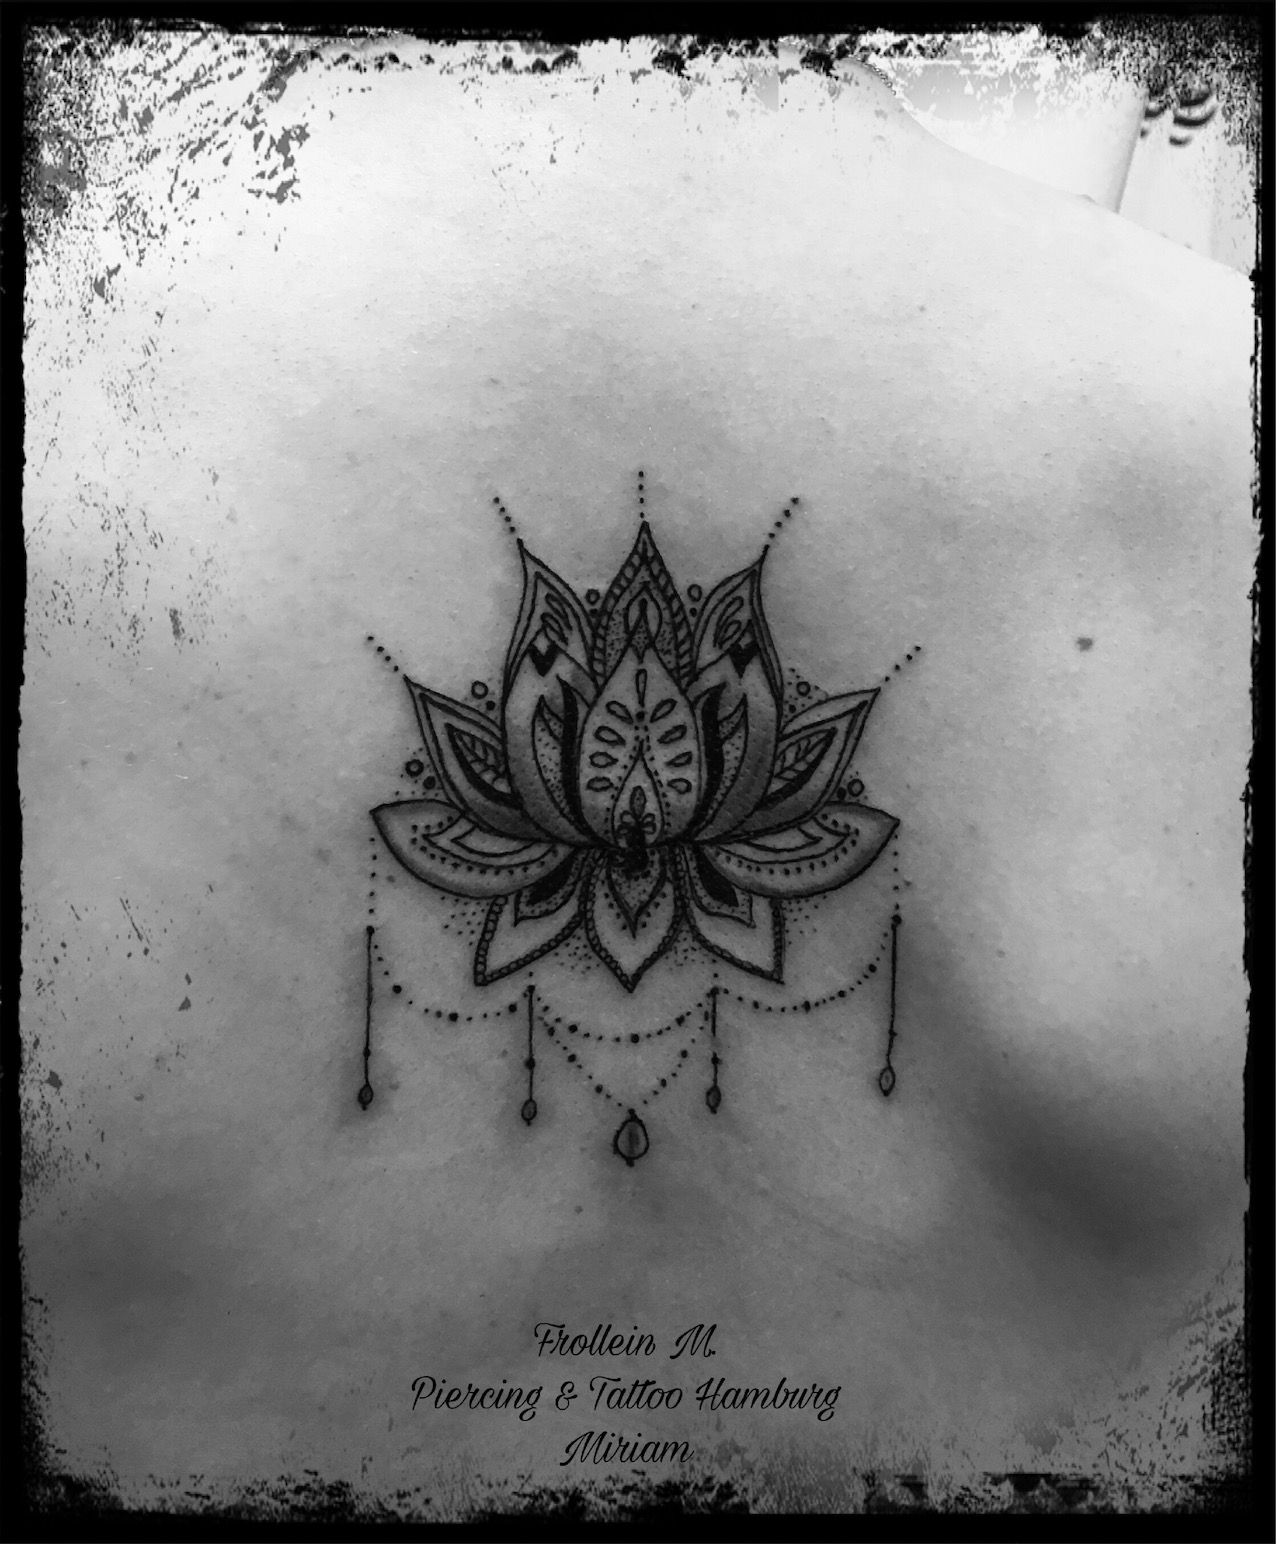 Lotus Flower Ornamentic Tattoo, Frollein M., Miriam